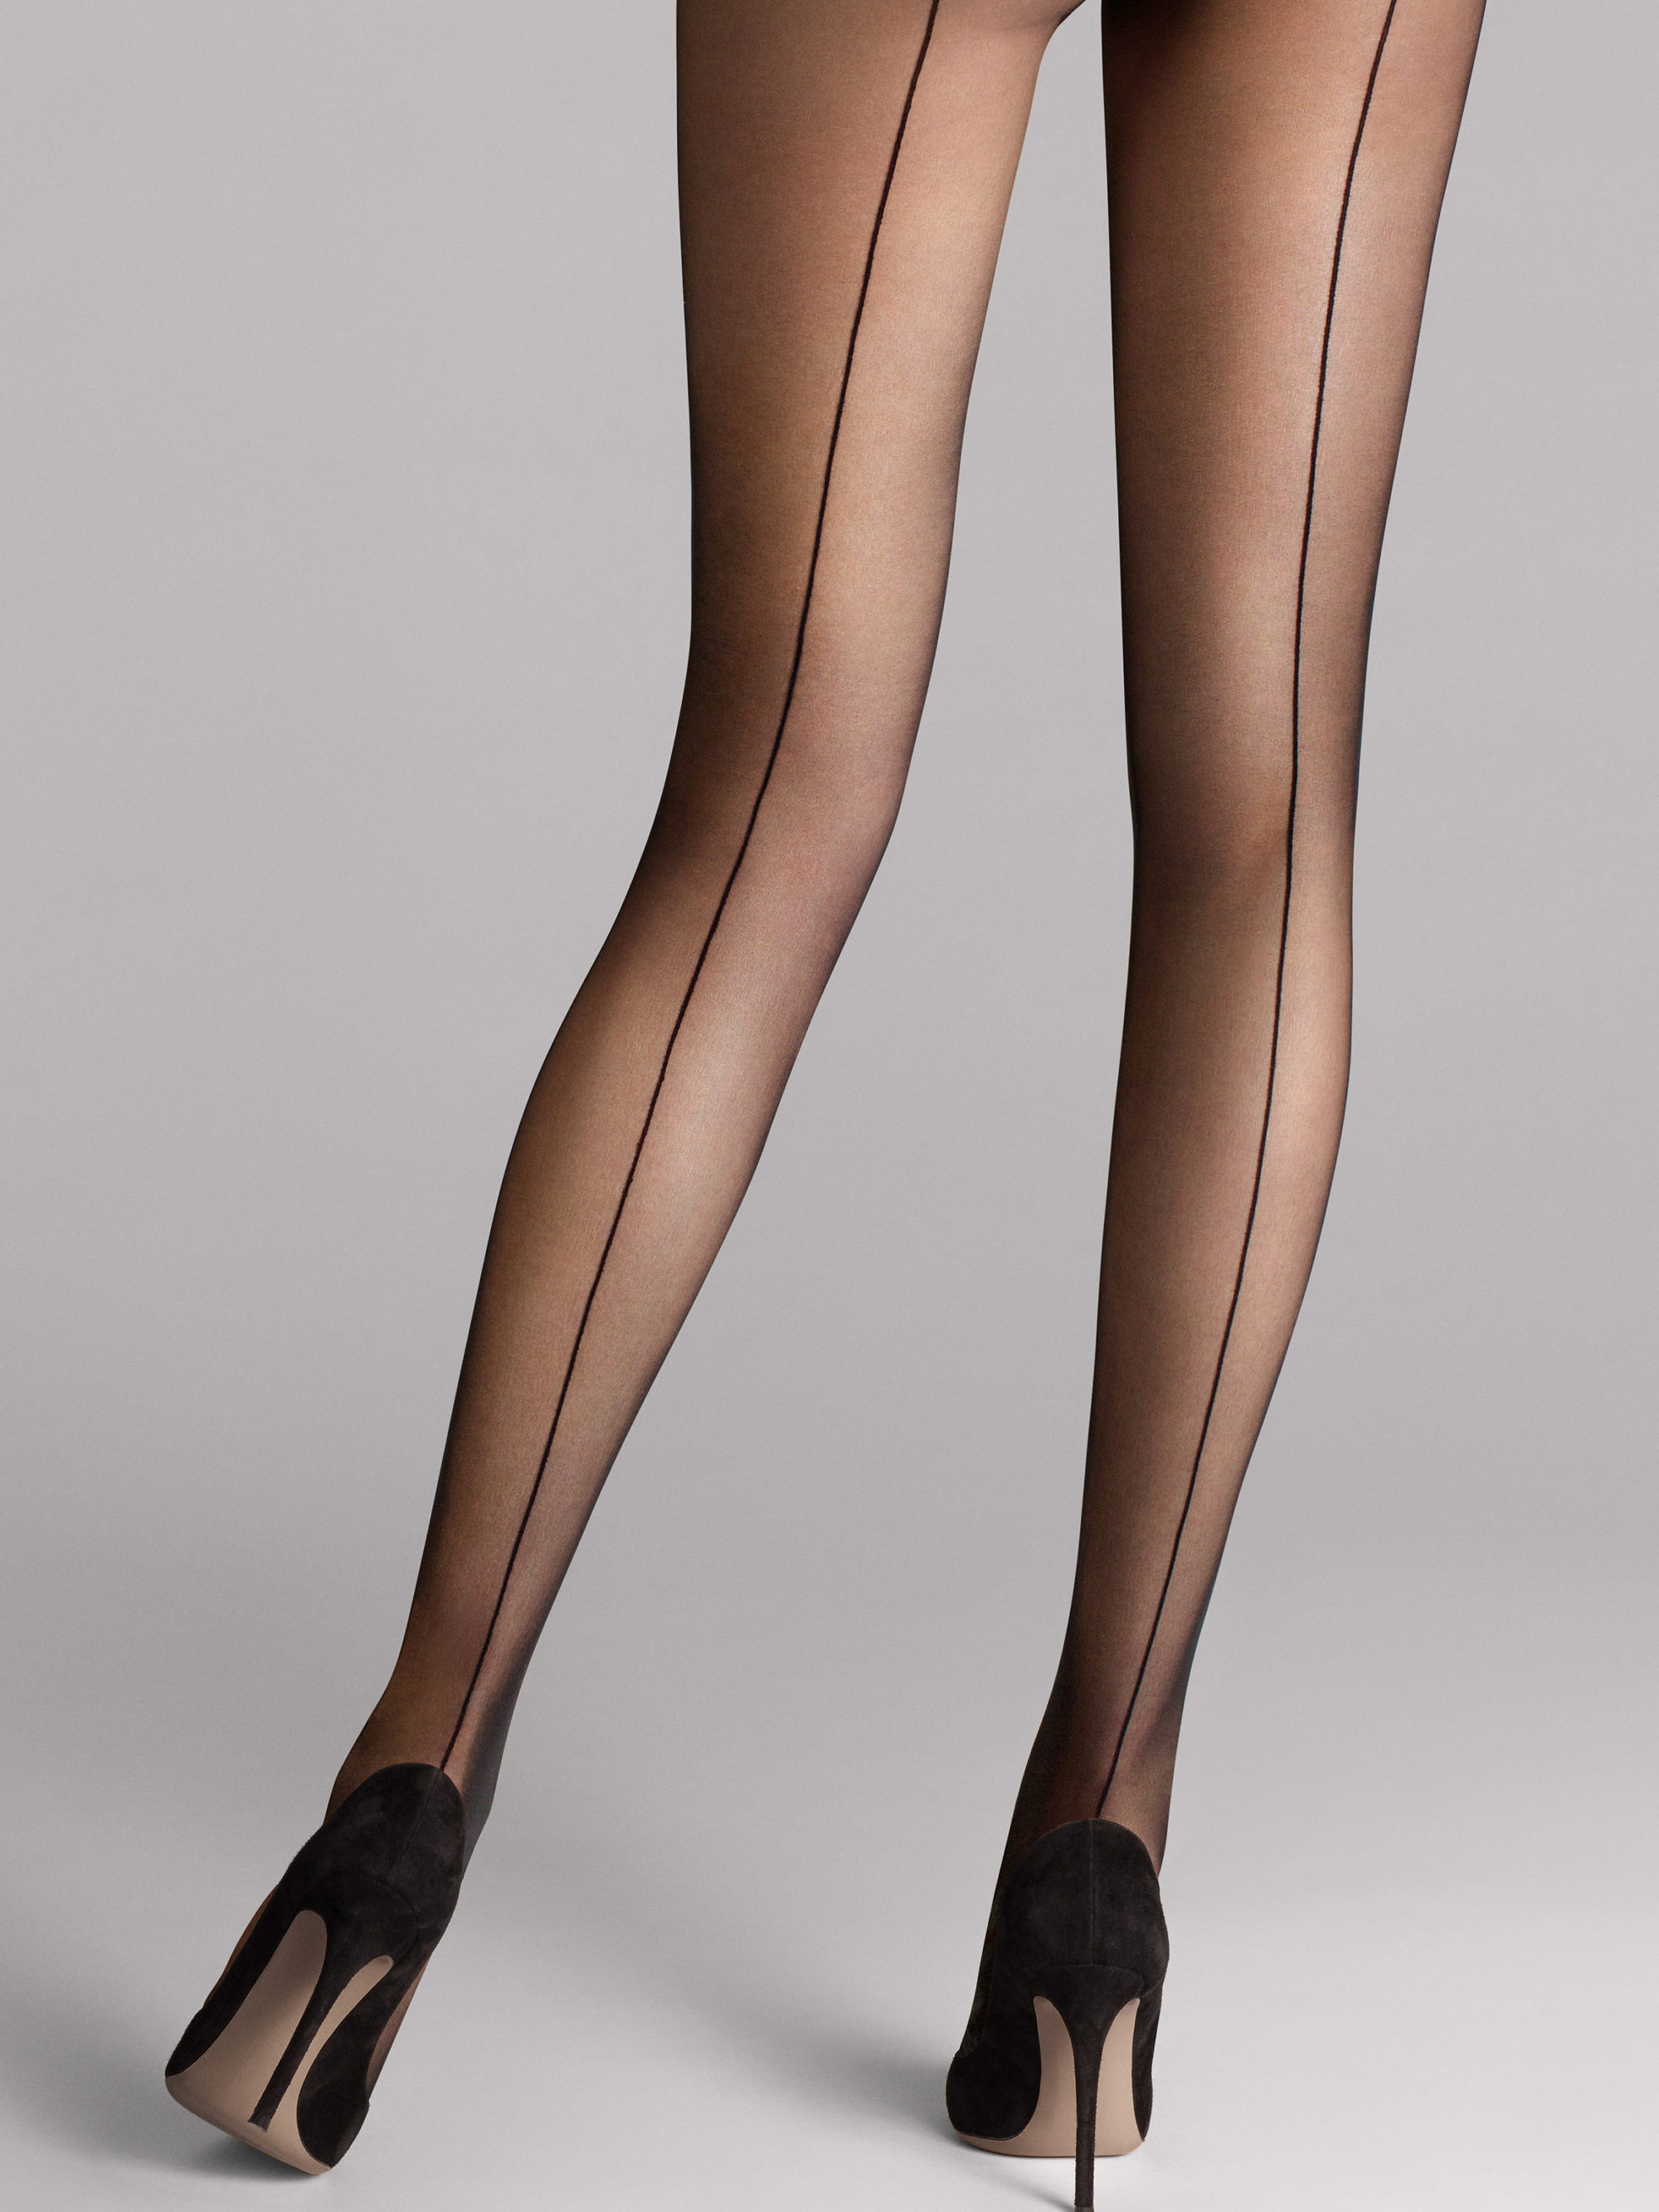 Wolford 18563 Individual 10 seam tights